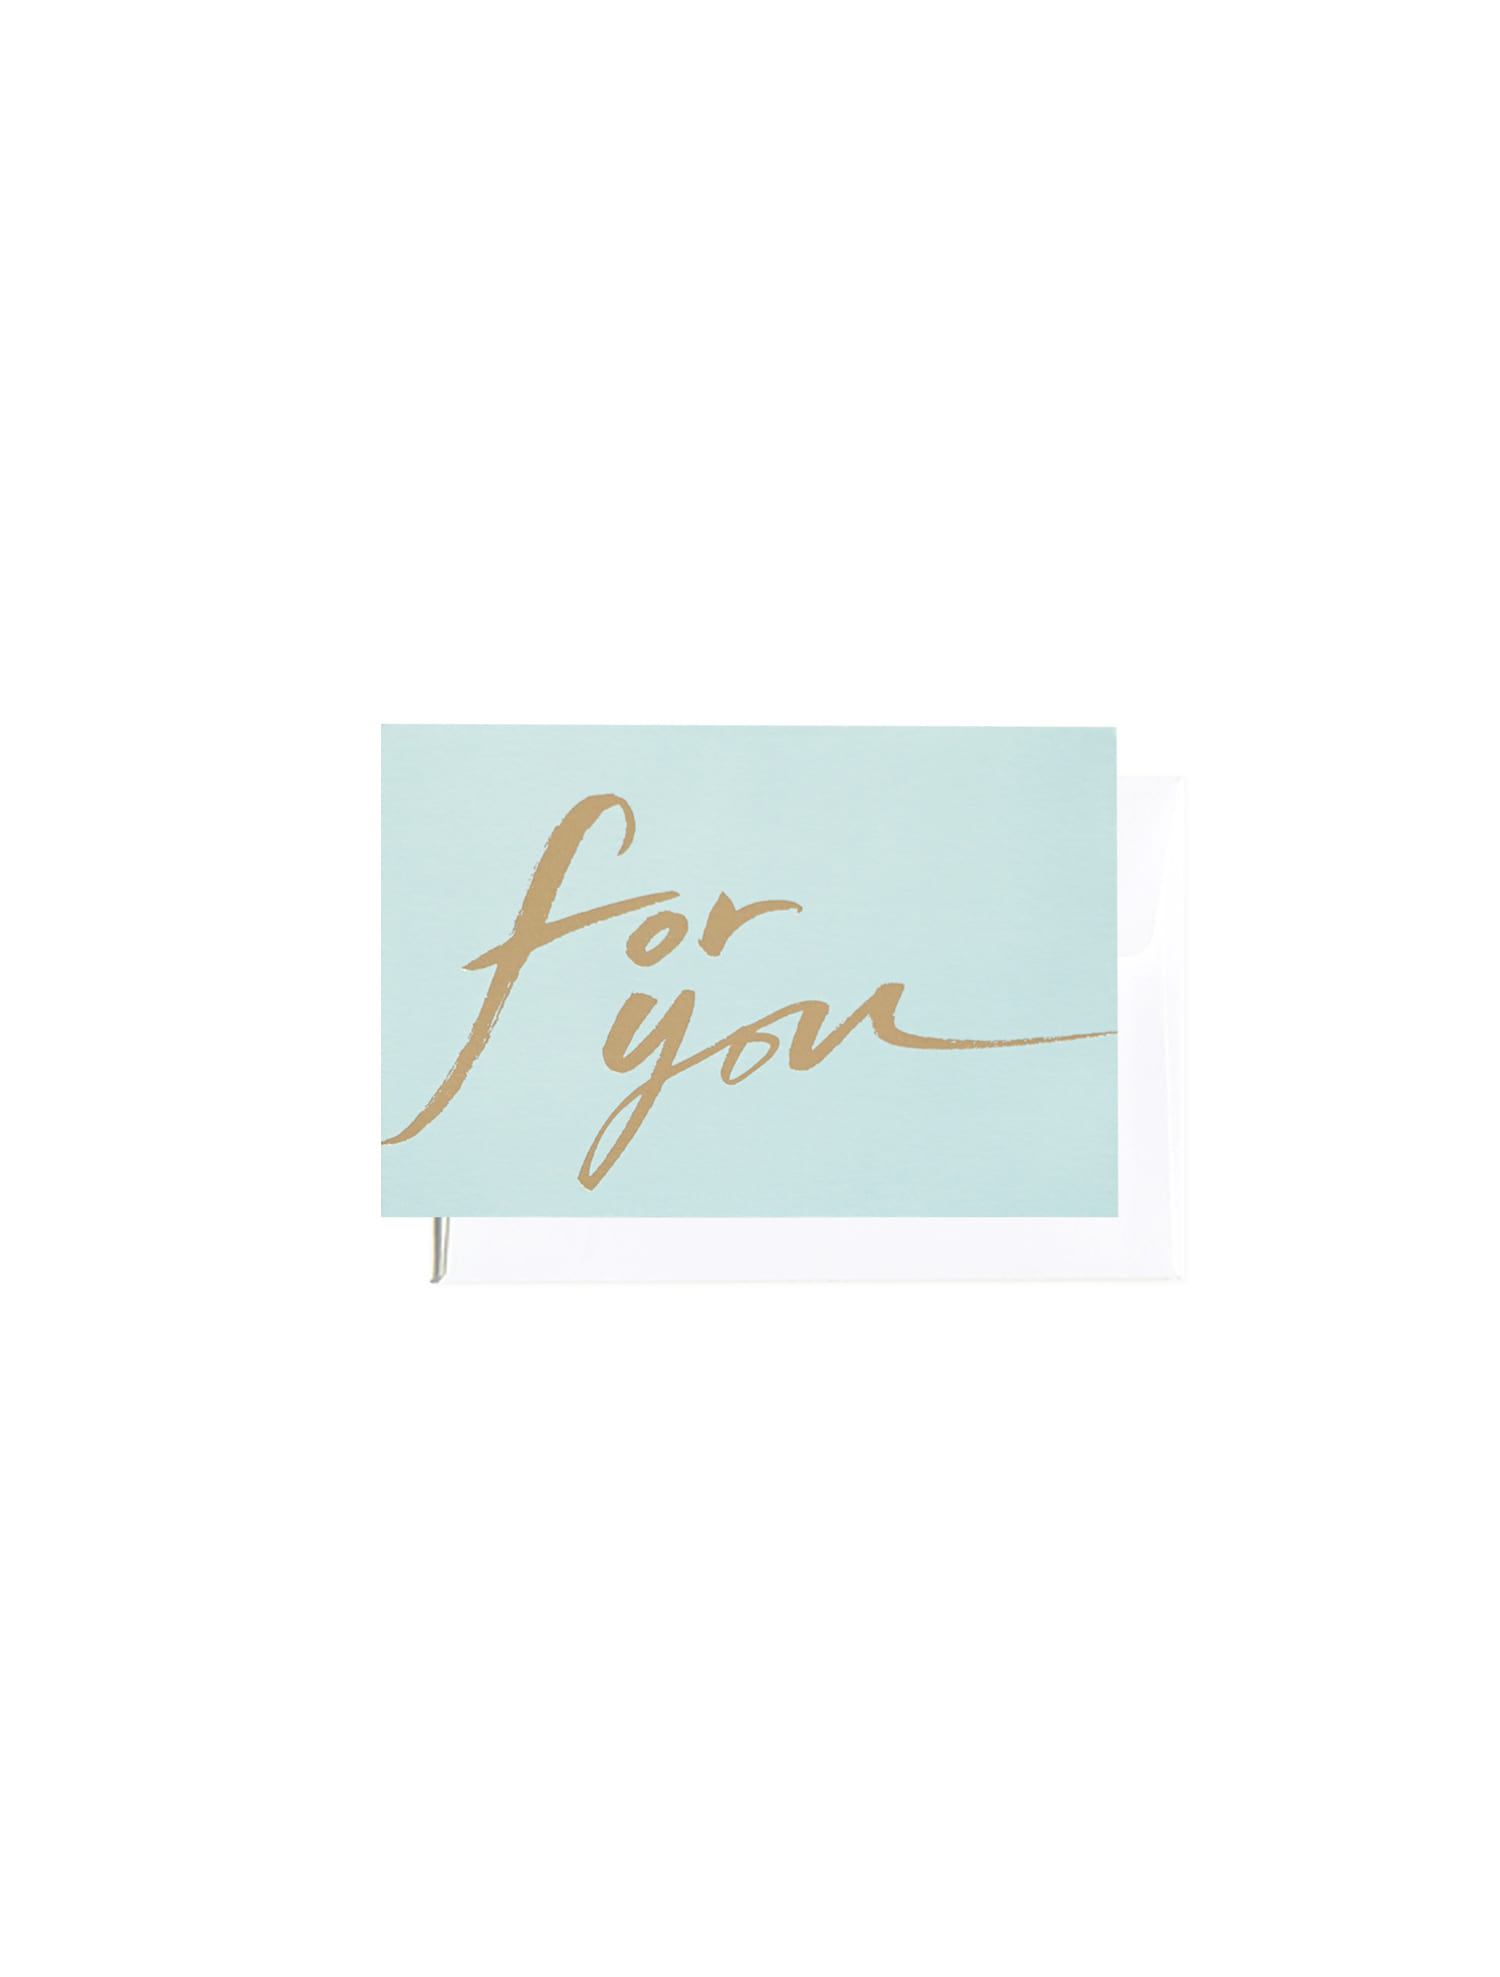 For you calligraphy message card